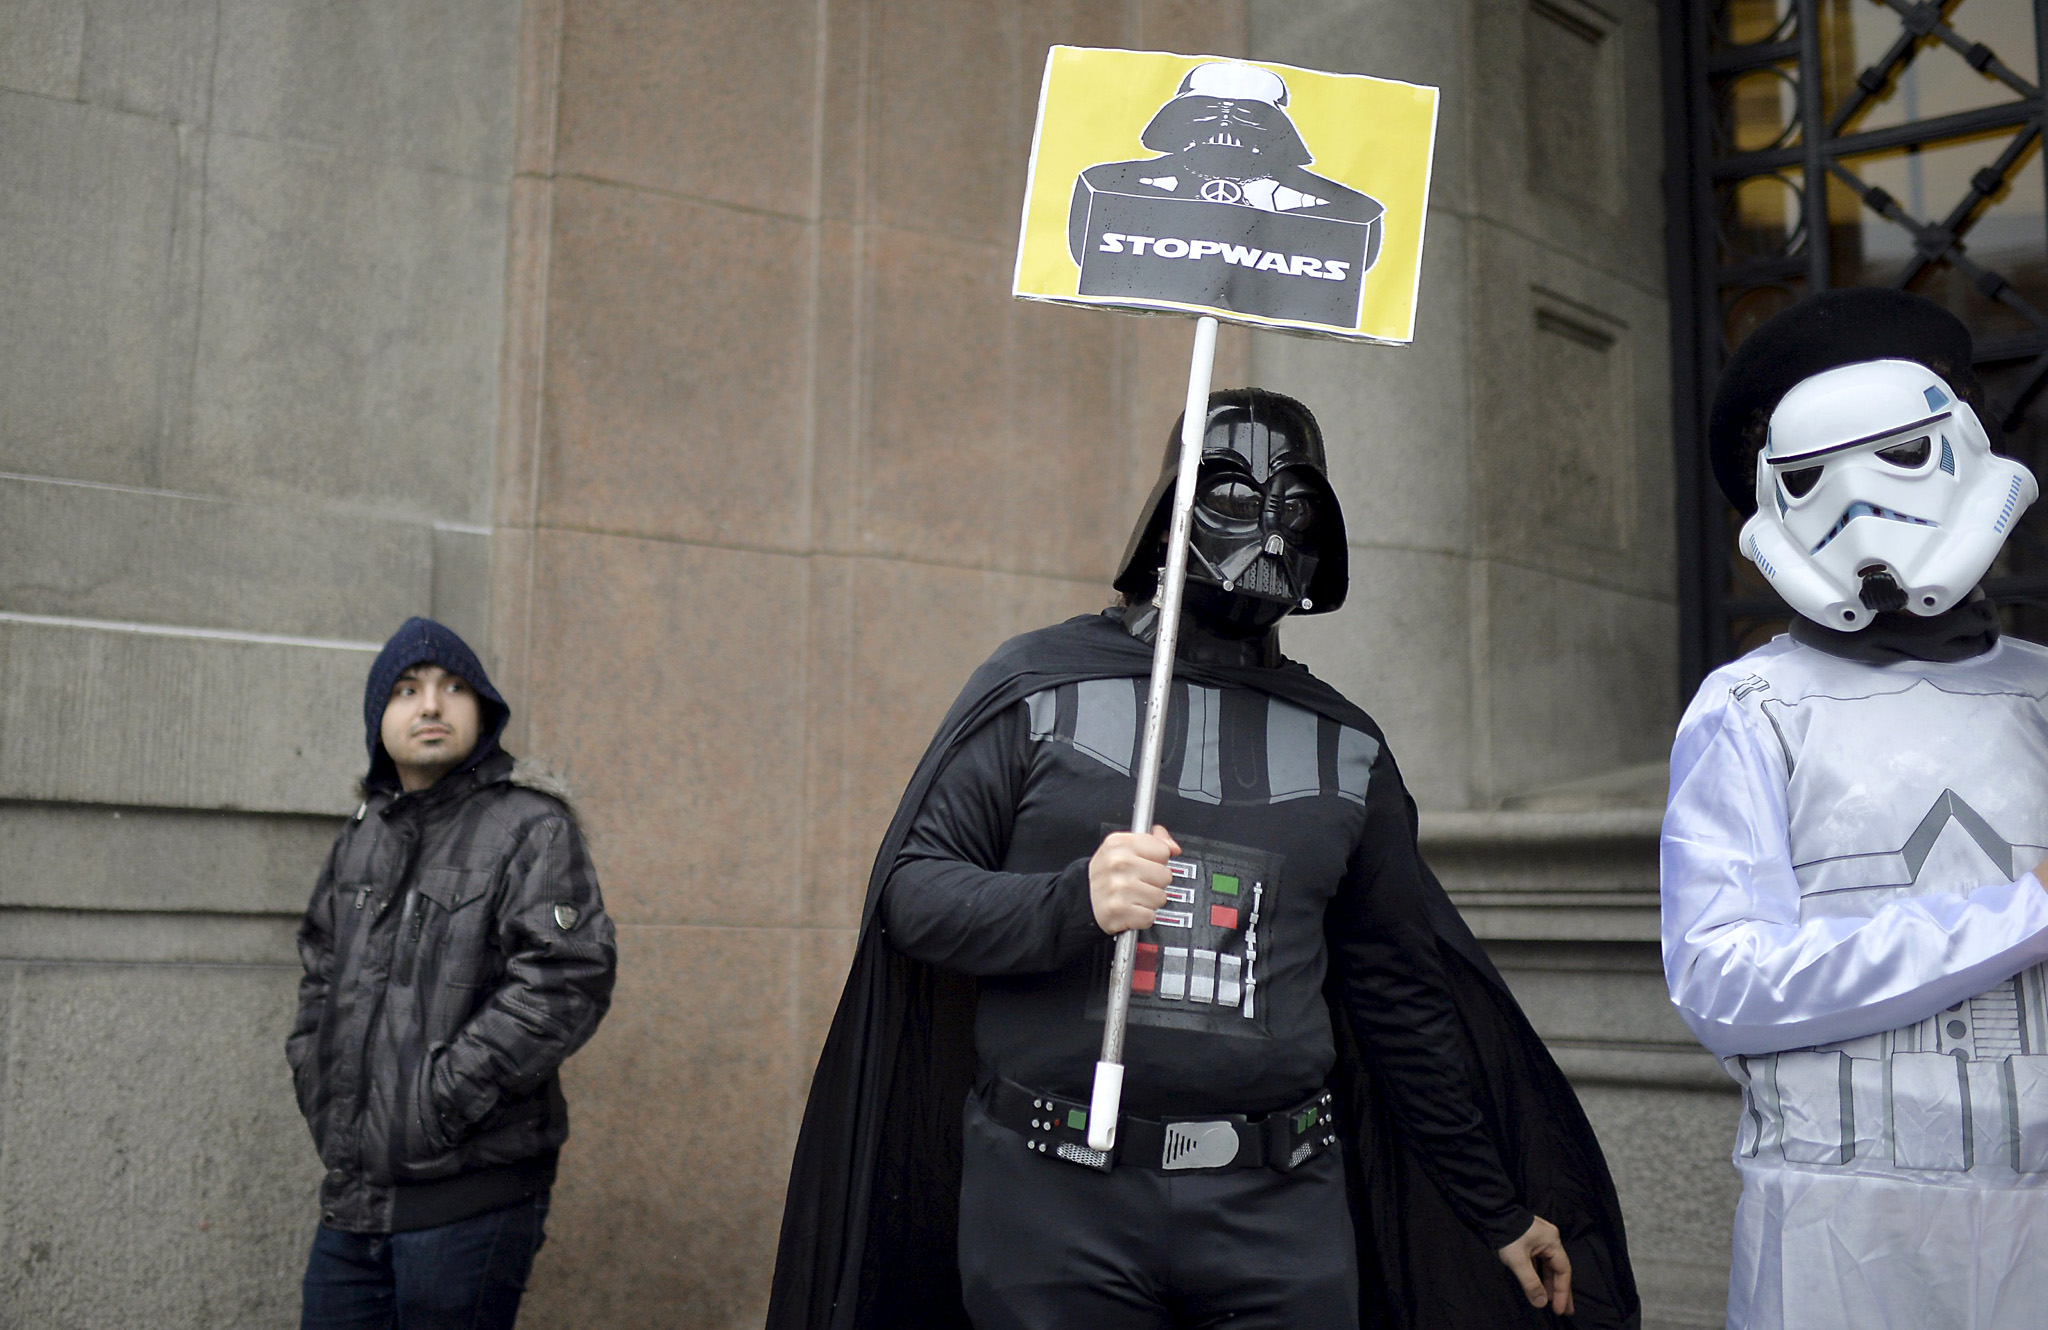 Protesters dressed as Star Wars characters take part in a protest against military spending in Bilbao...Protesters dressed as Darth Vader and stormtrooper from the film series Star Wars take part in a demonstration against military spending and in favour of aid for refugees ahead of the thirtieth anniversary of the referendum on Spain's membership in NATO, in Bilbao, northern Spain March 9, 2016. REUTERS/Vincent West